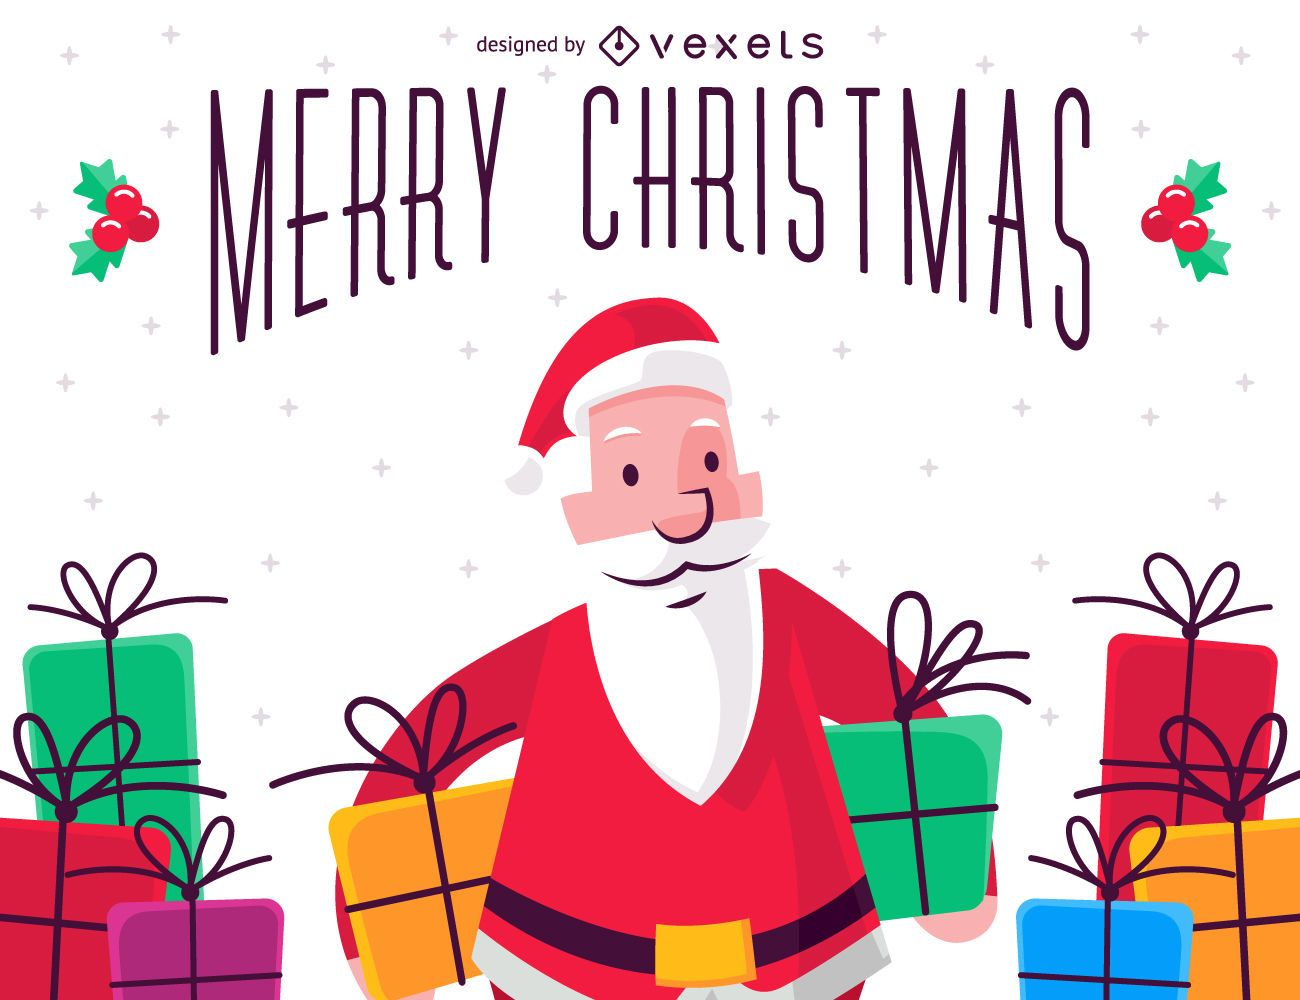 Christmas Illustration.Merry Christmas Illustration With Santa Claus Vector Download